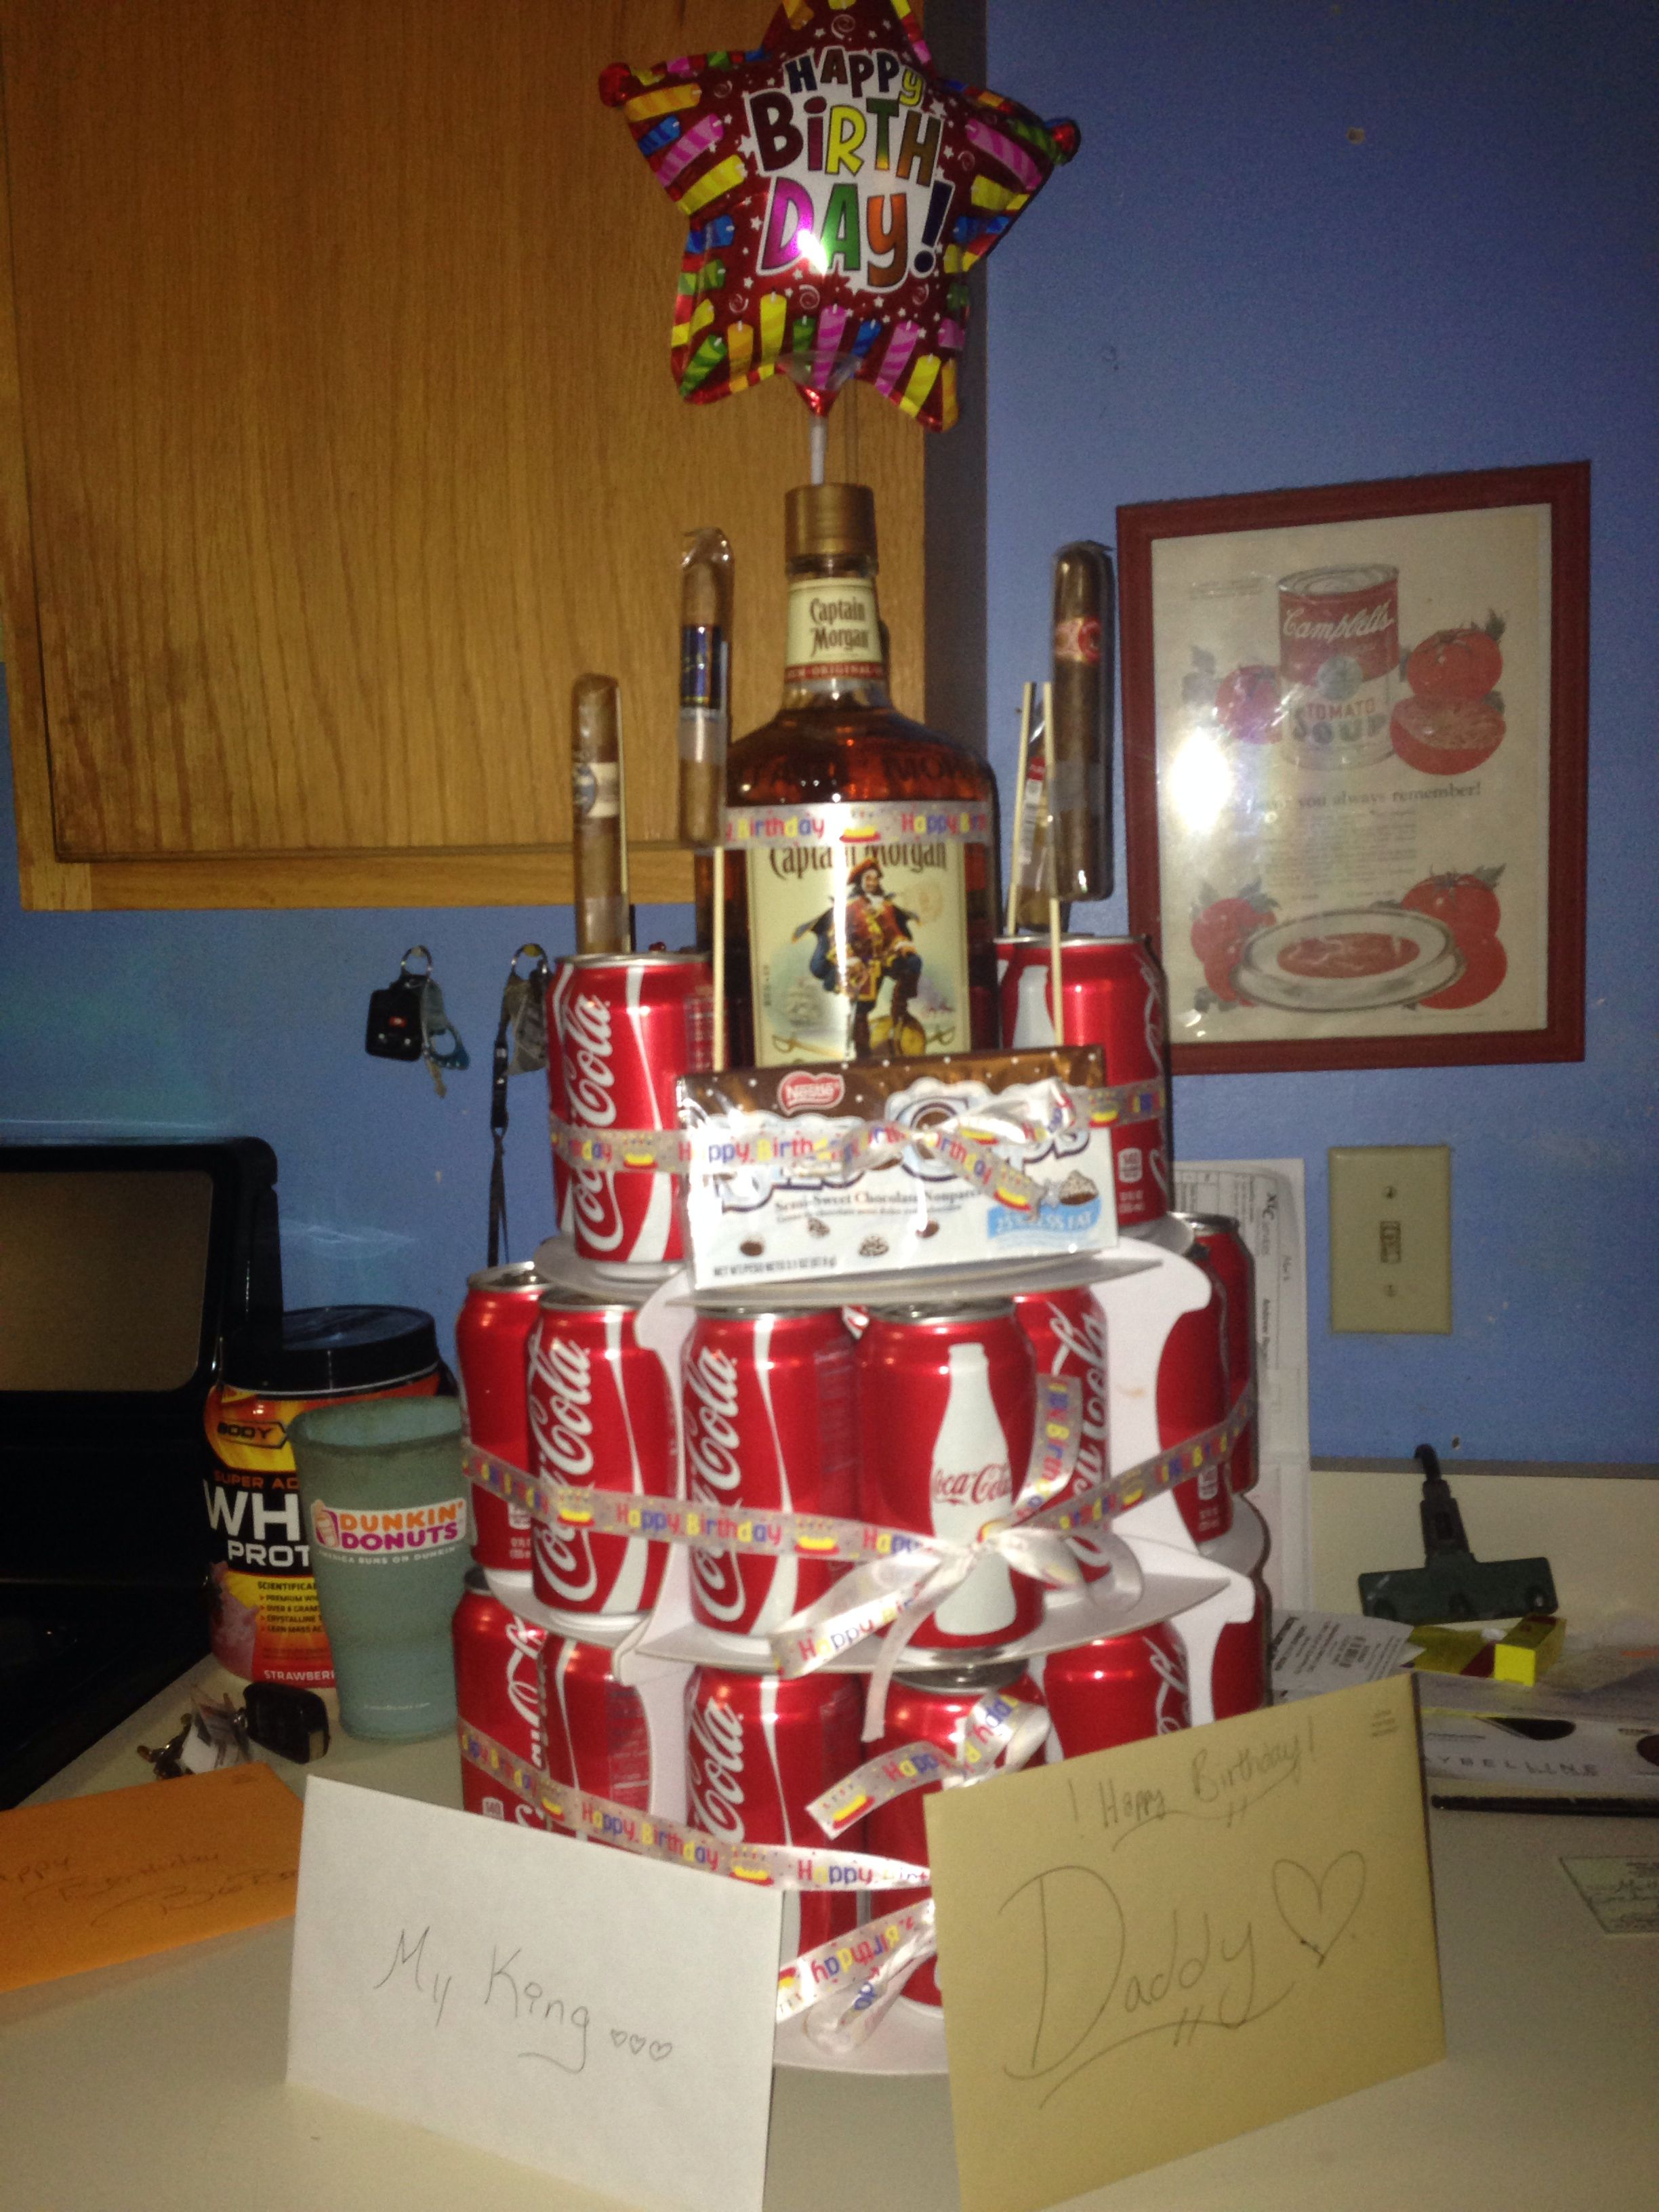 40 Cans Of Coke A Bottle Captain Morgan And Some Cigars Perfect Birthday Gift For My Dad